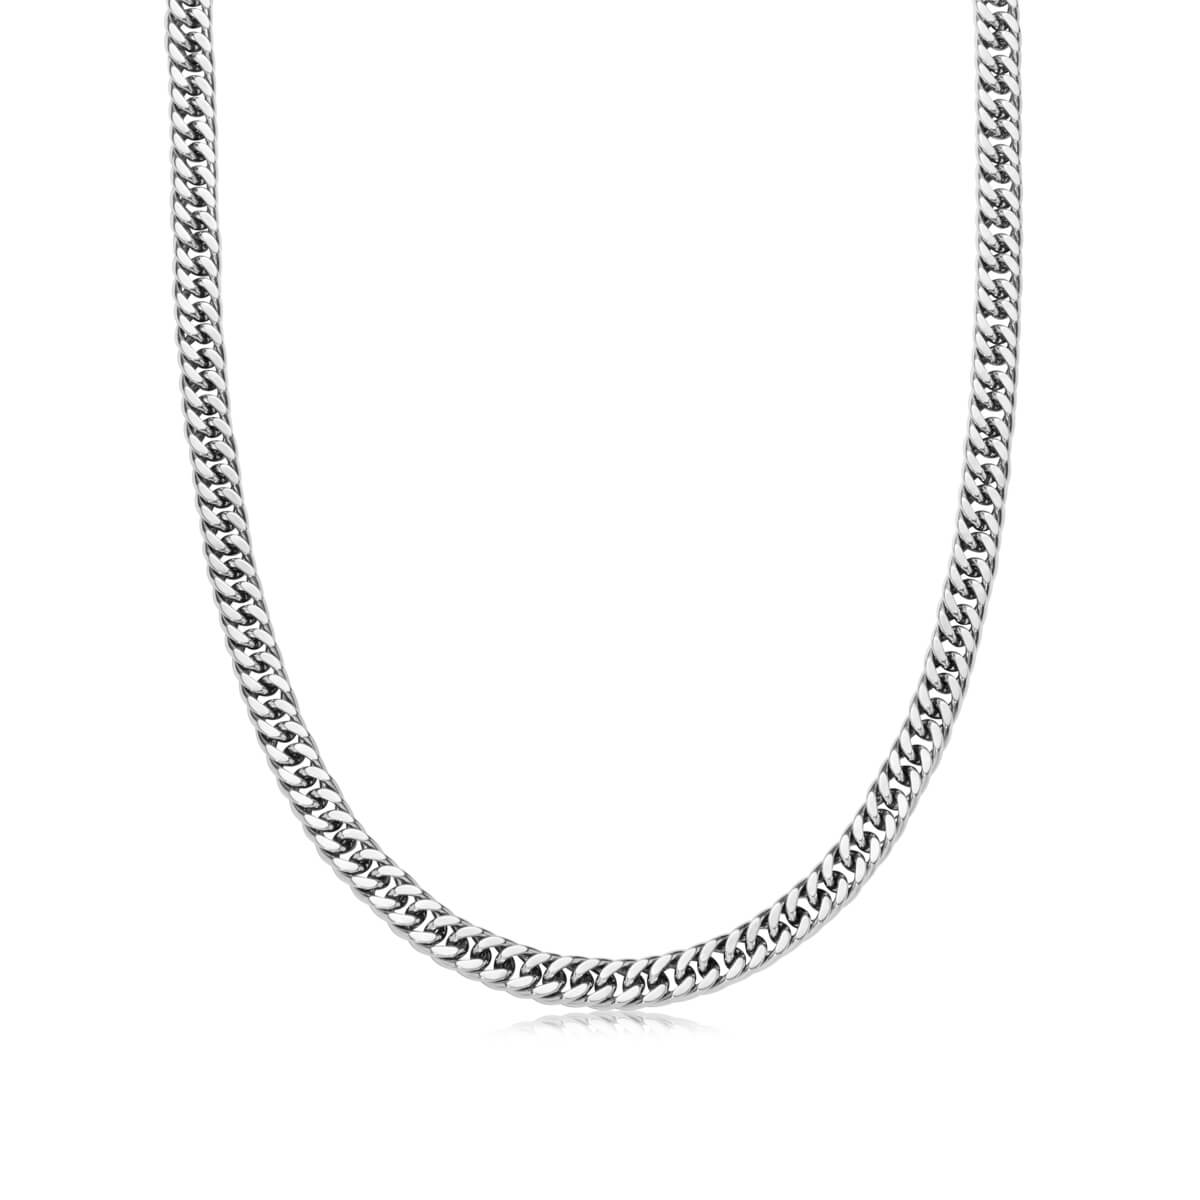 Curb Chain Necklace 18 in (Silver)